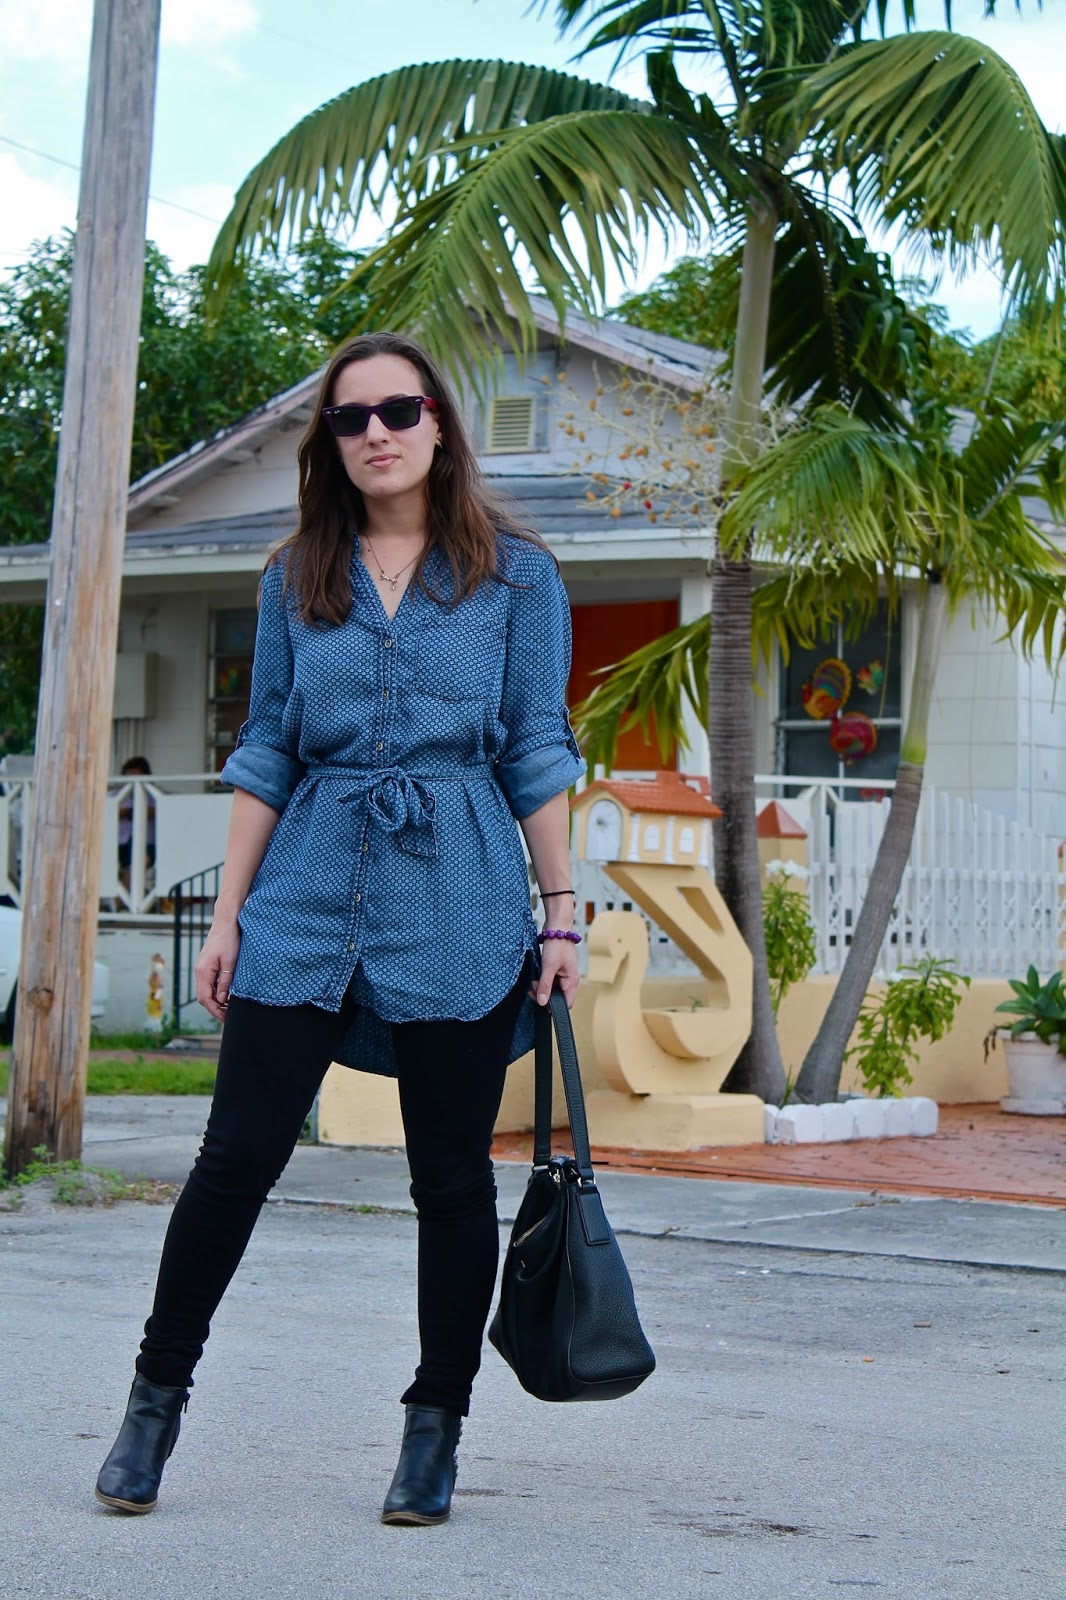 Ralph Lauren, target, Anthropologie, Kate Spade, Ray-Ban, fashion blogger, style blog, Miami fashion blogger, Miami style, fall fashion, chambray, ootd, outfit ideas, what to wear